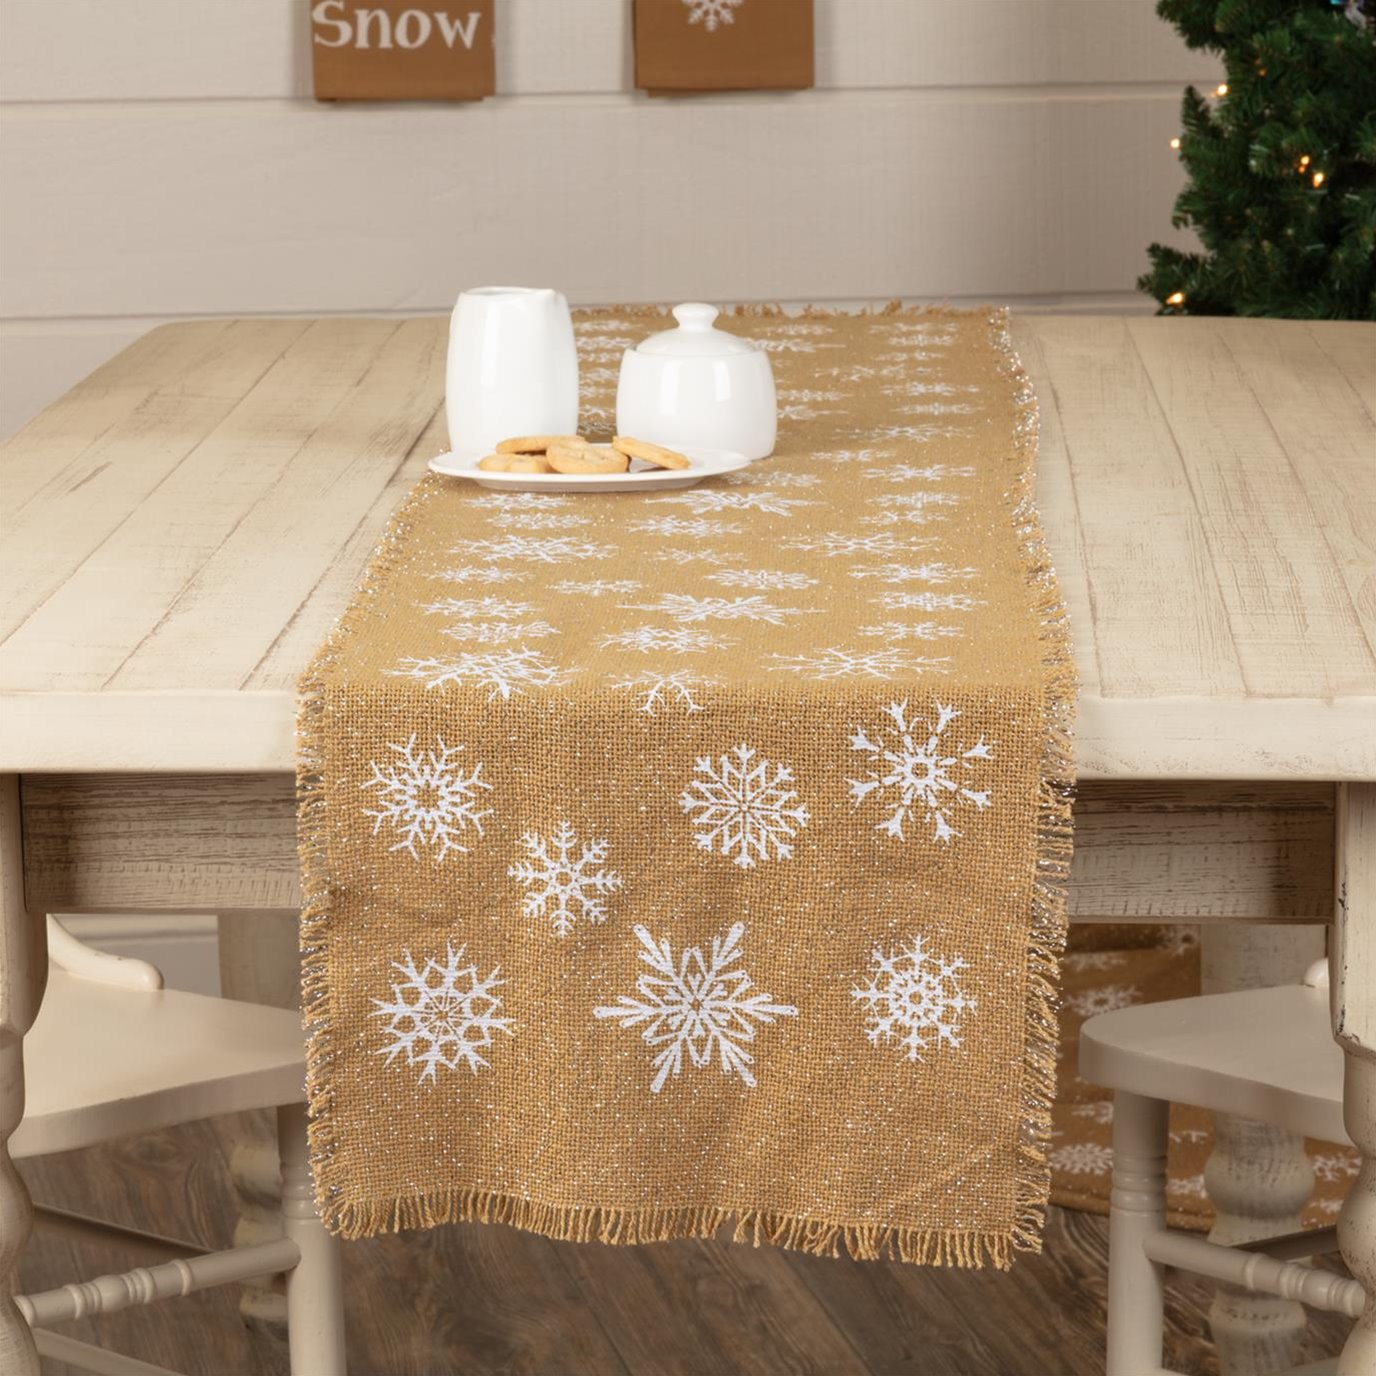 Snowflake Burlap Natural Runner 13x72